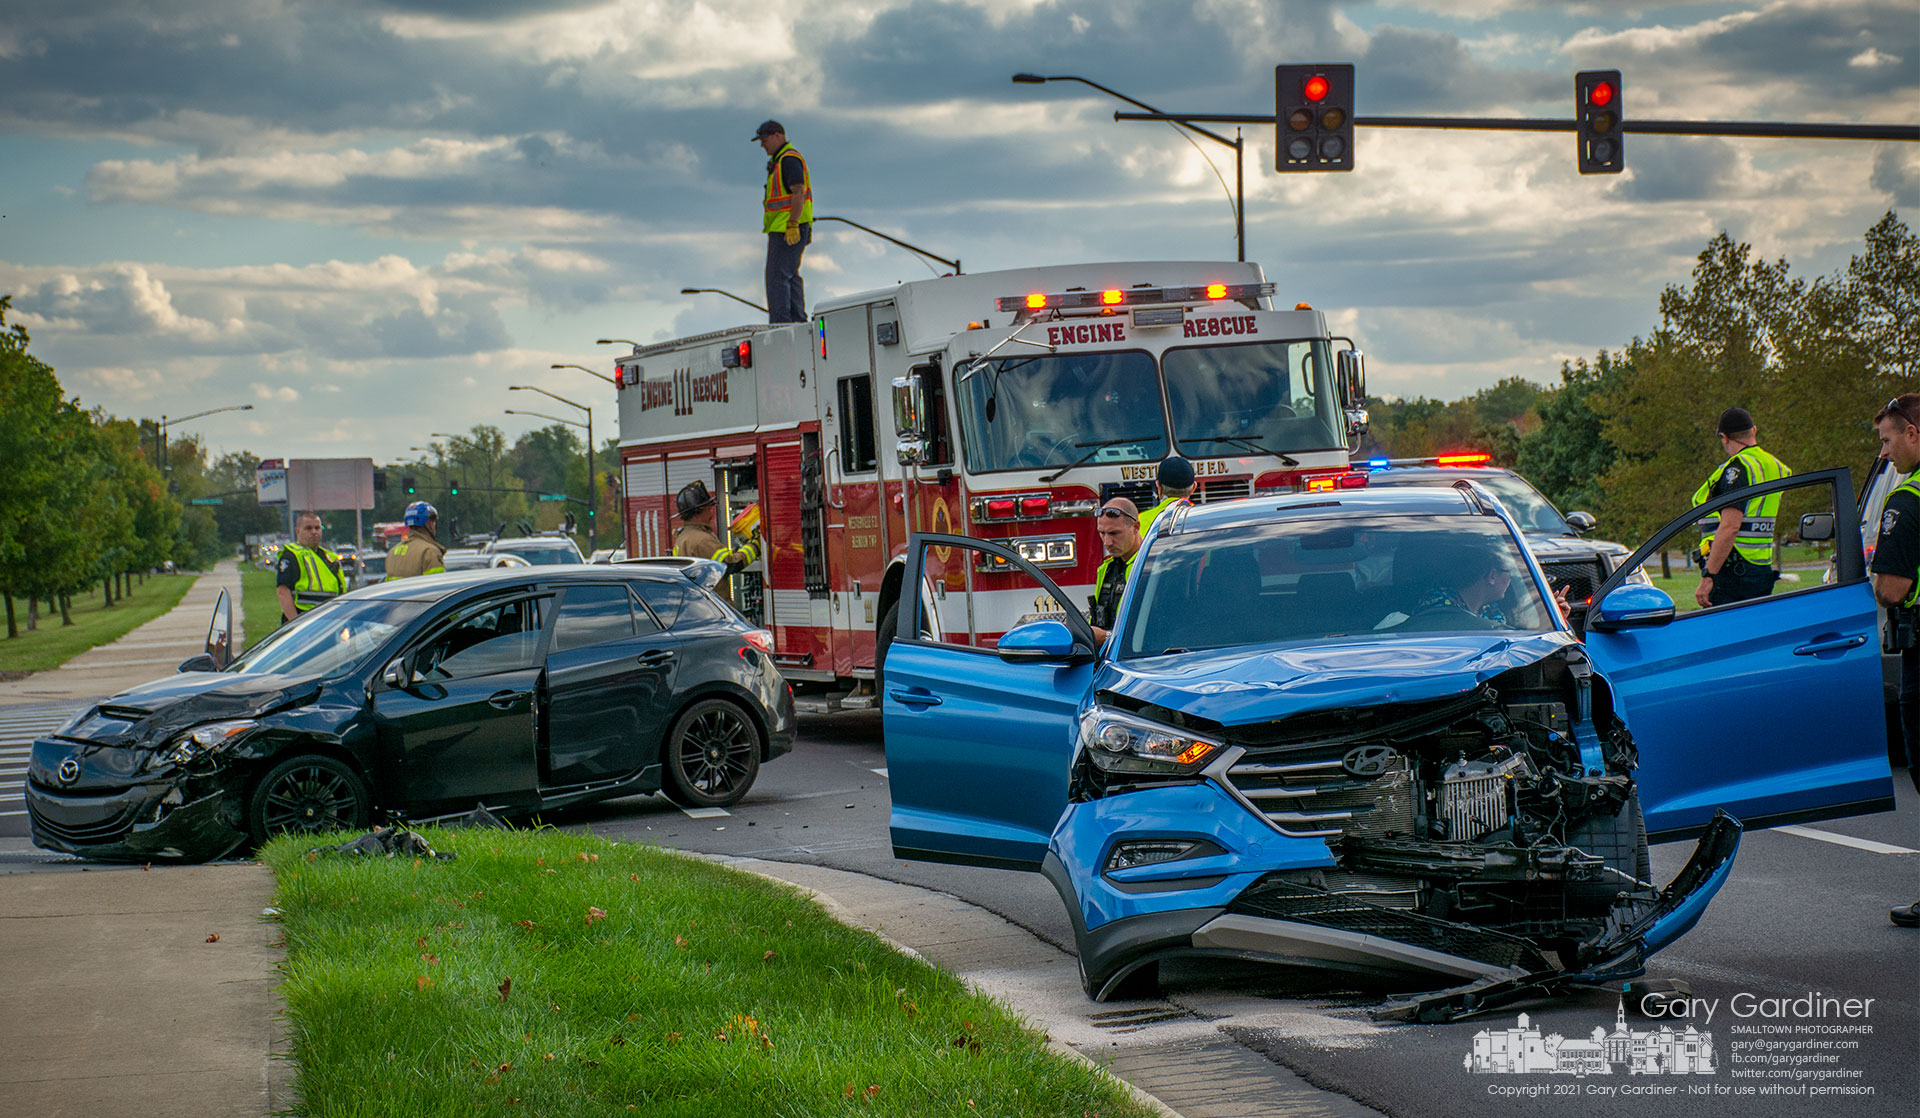 A Westerville firefighter retrieves equipment from the top of a fire truck as police investigate a car crash during rush hour at Cleveland Ave. and County Line Road. My Final Photo for Oct. 12, 2021.